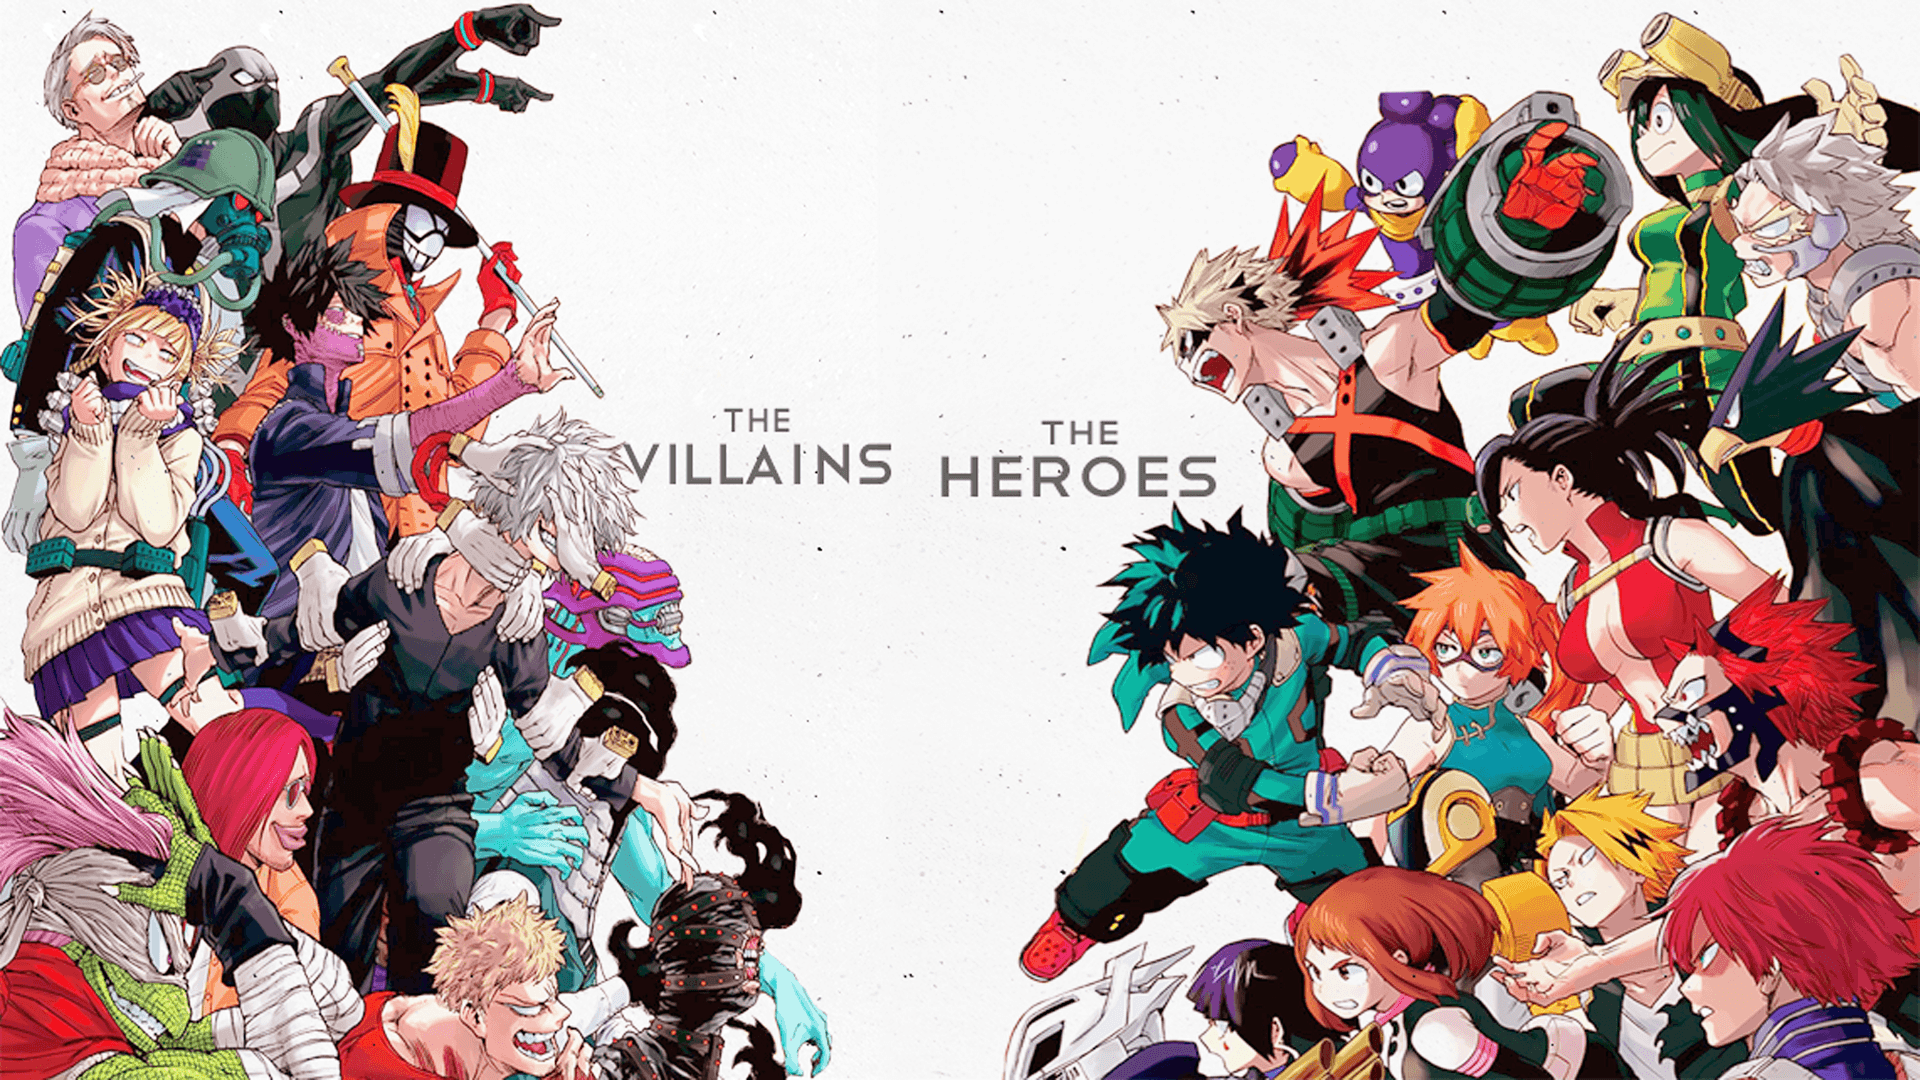 Cute My Hero Academia Wallpapers Top Free Cute My Hero Academia Backgrounds Wallpaperaccess We present you our collection of desktop wallpaper theme: cute my hero academia wallpapers top